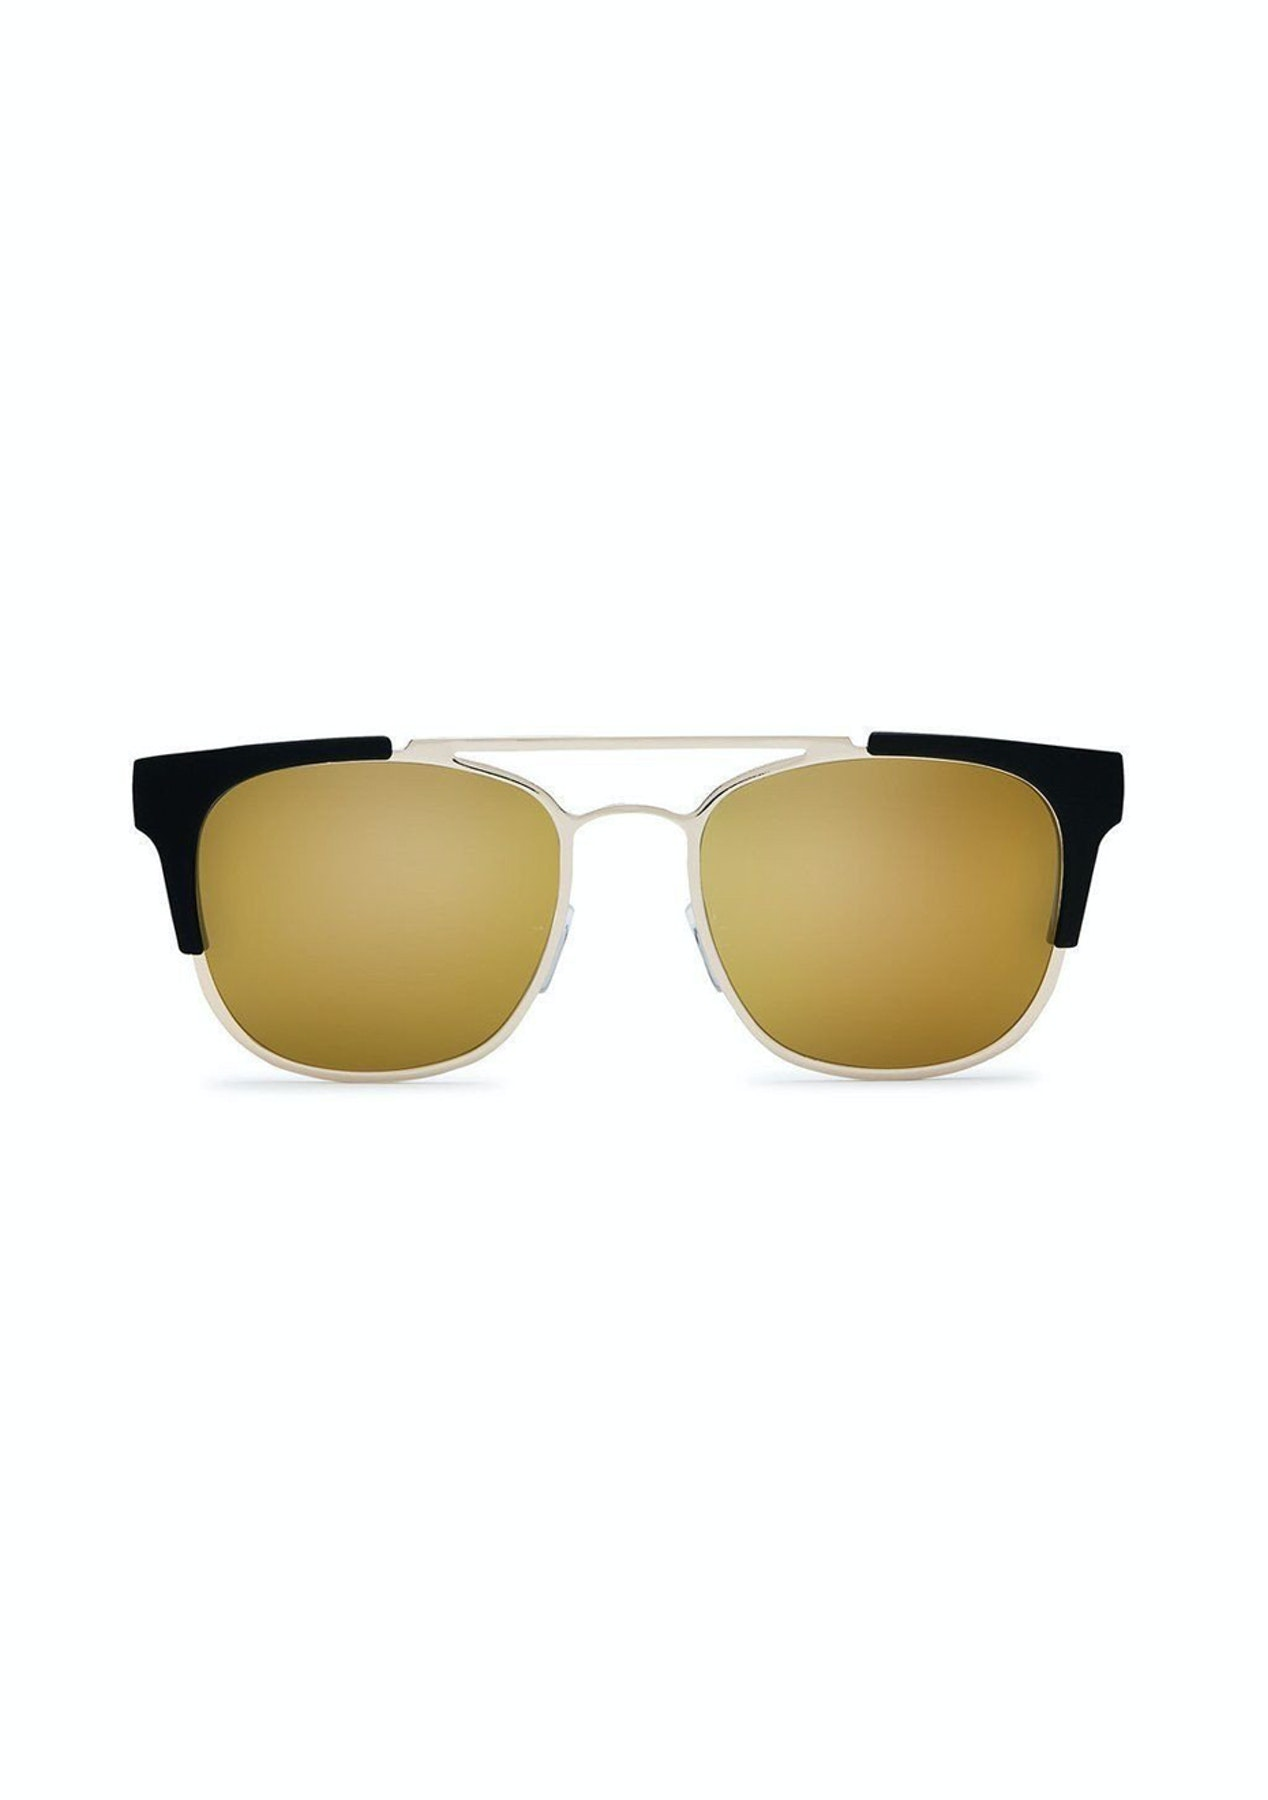 3c1ca21550 Quay Australia High and Dry Sunglasses - Gold - Quay Australia Eyewear From   29.95 - Onceit